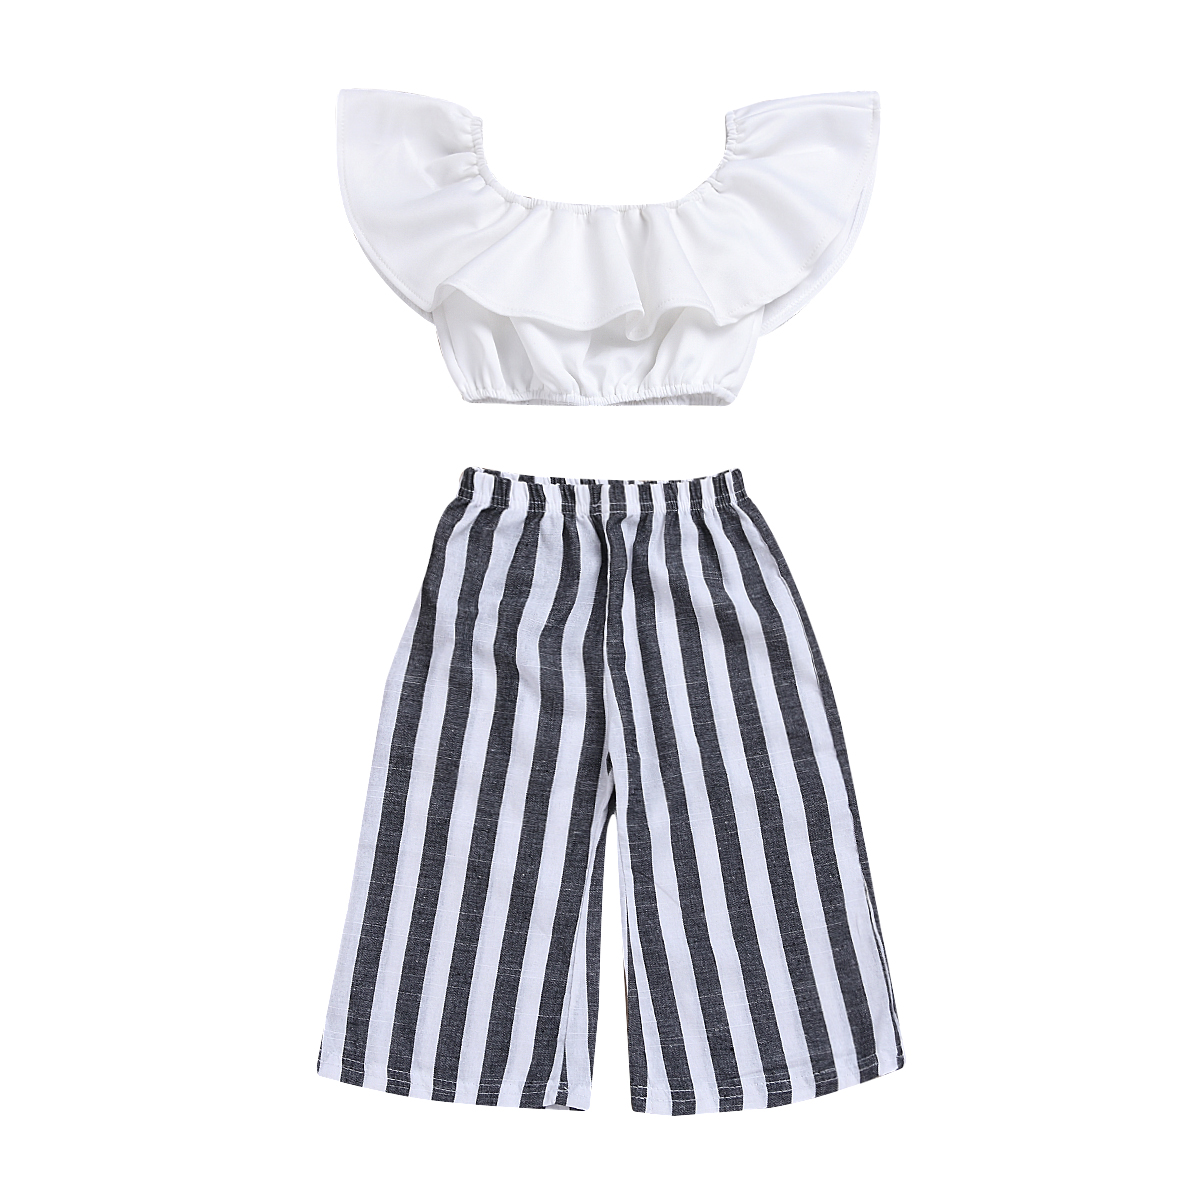 Pudcoco Toddler Girls Summer Clothing Set Off Shoulder Tops Ruffle Blouse+Striped Long Pants 2PCS Boutique Kids Toddler Clothes chic off the shoulder asymmetrical women s blouse